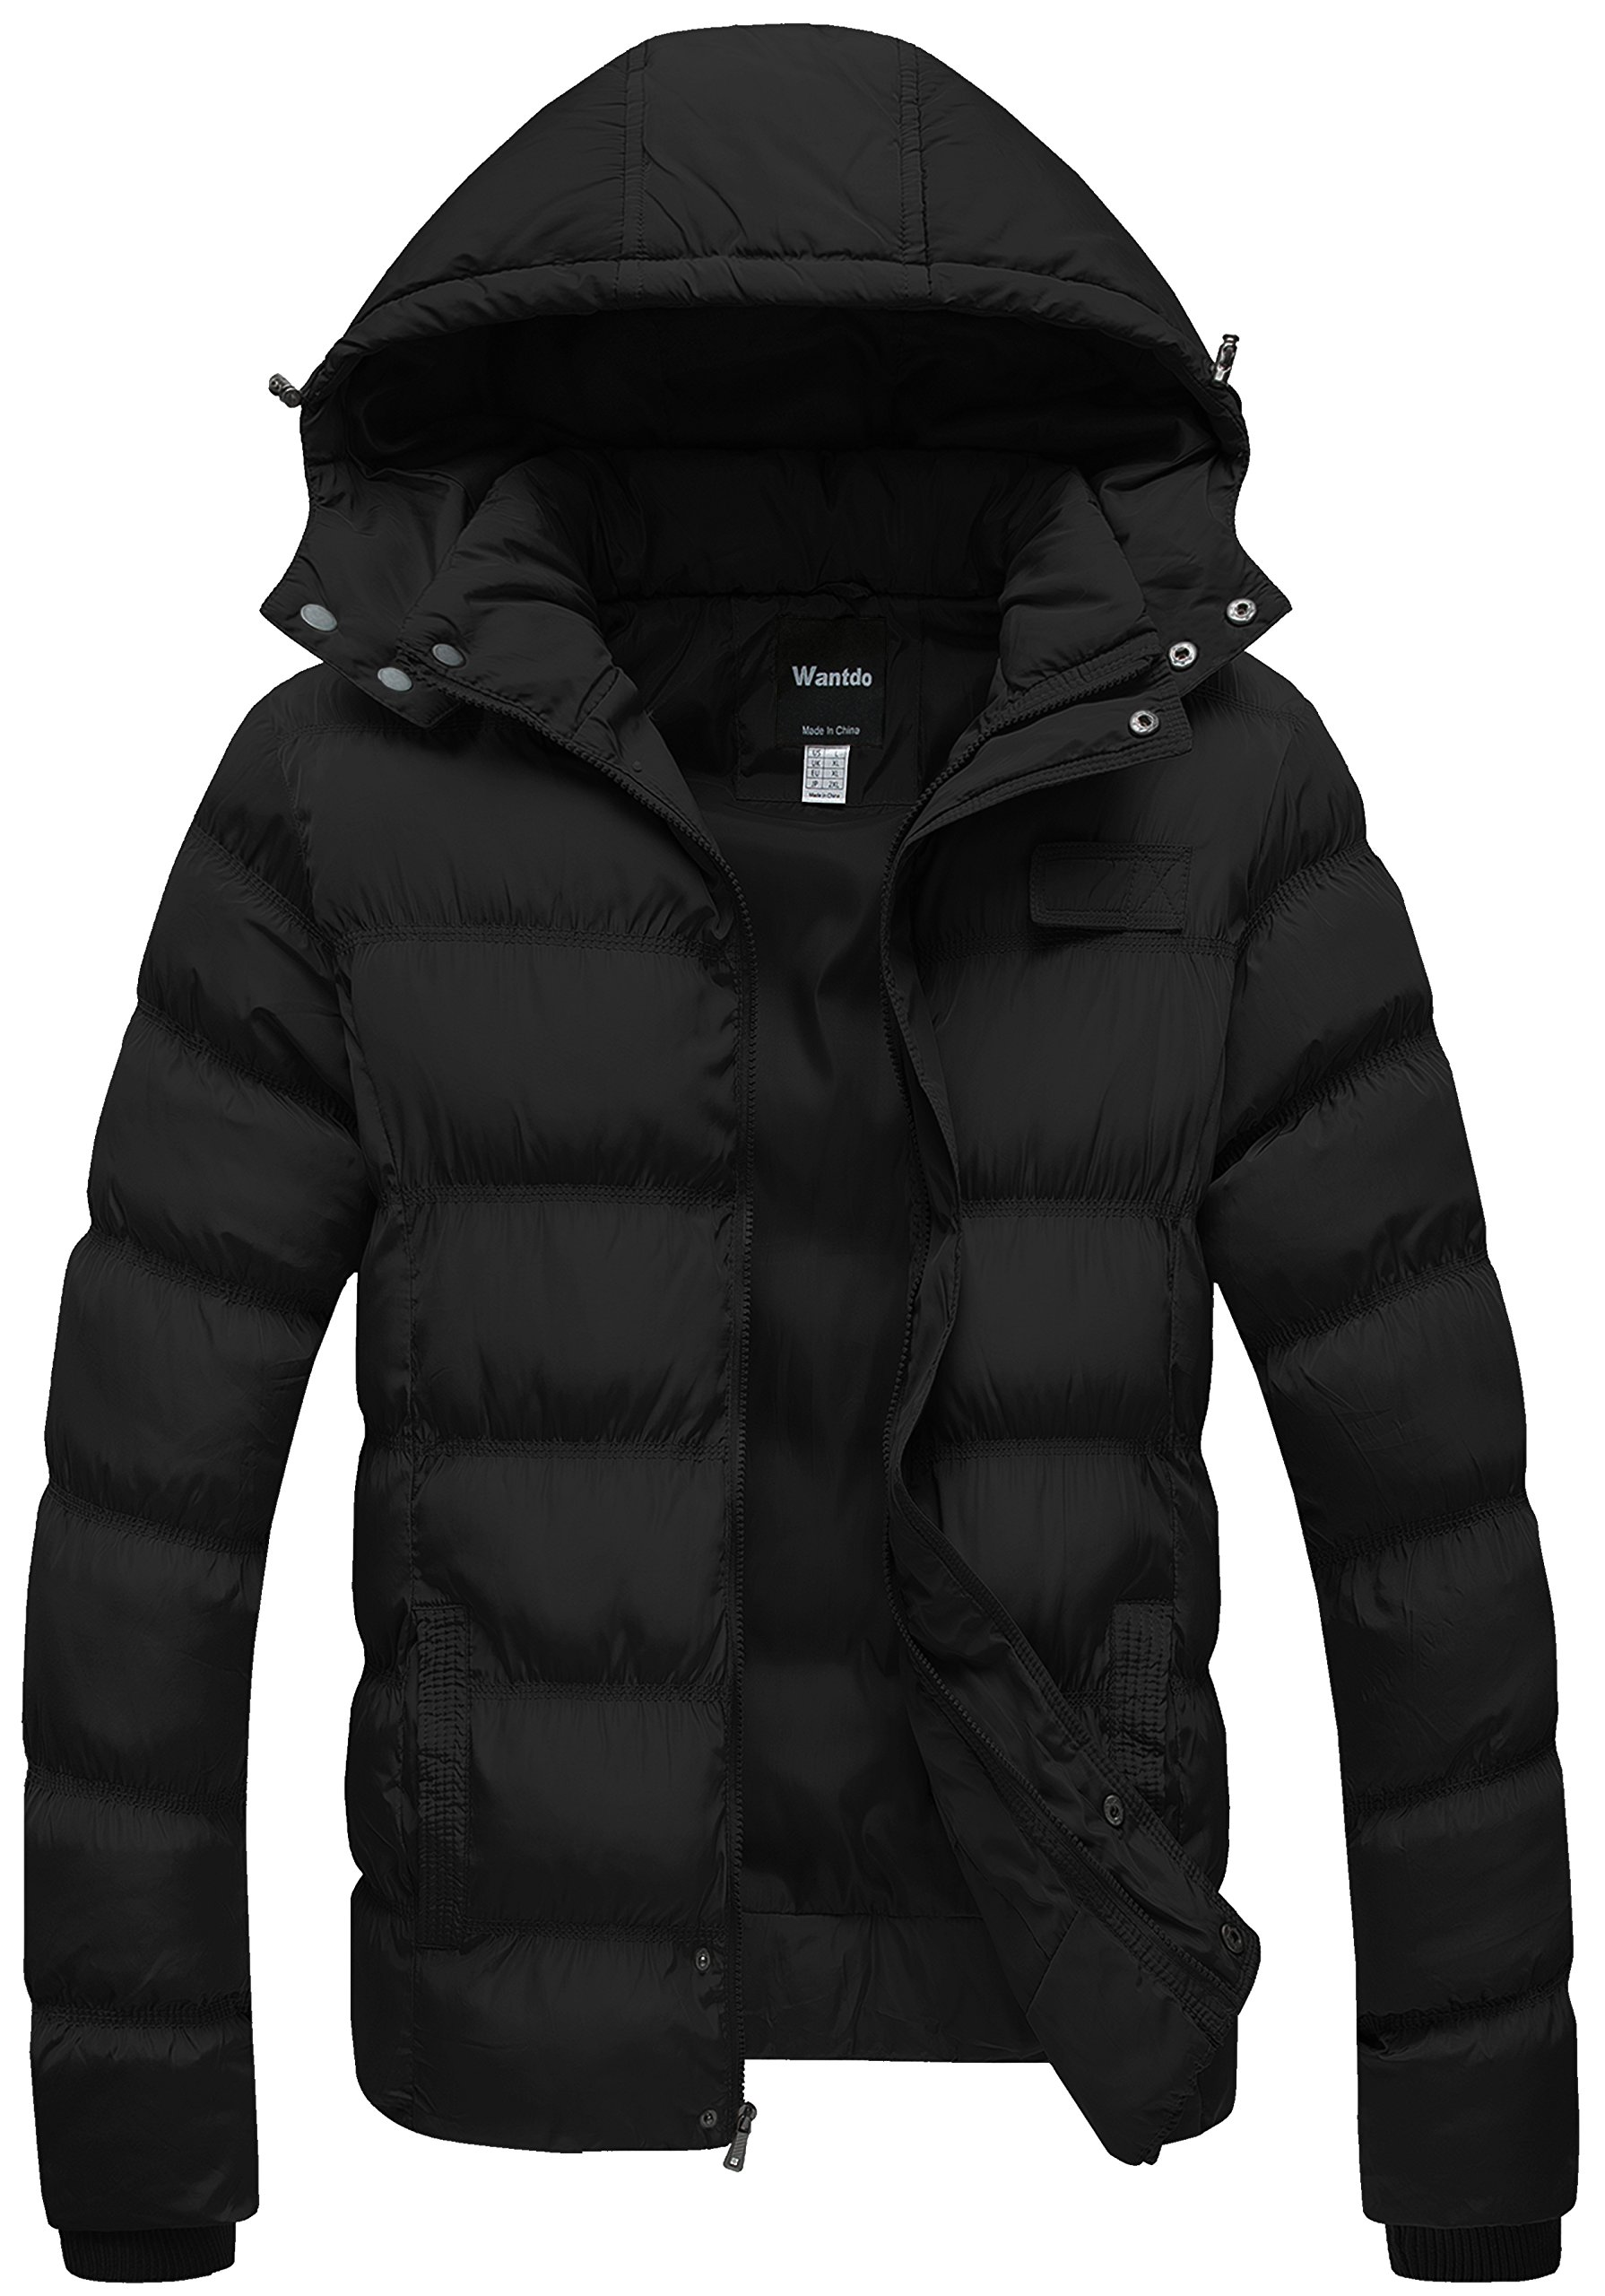 Wantdo Men's Winter Thicken Cotton Coat Puffer Jacket with Removable Hood US Large Black by Wantdo